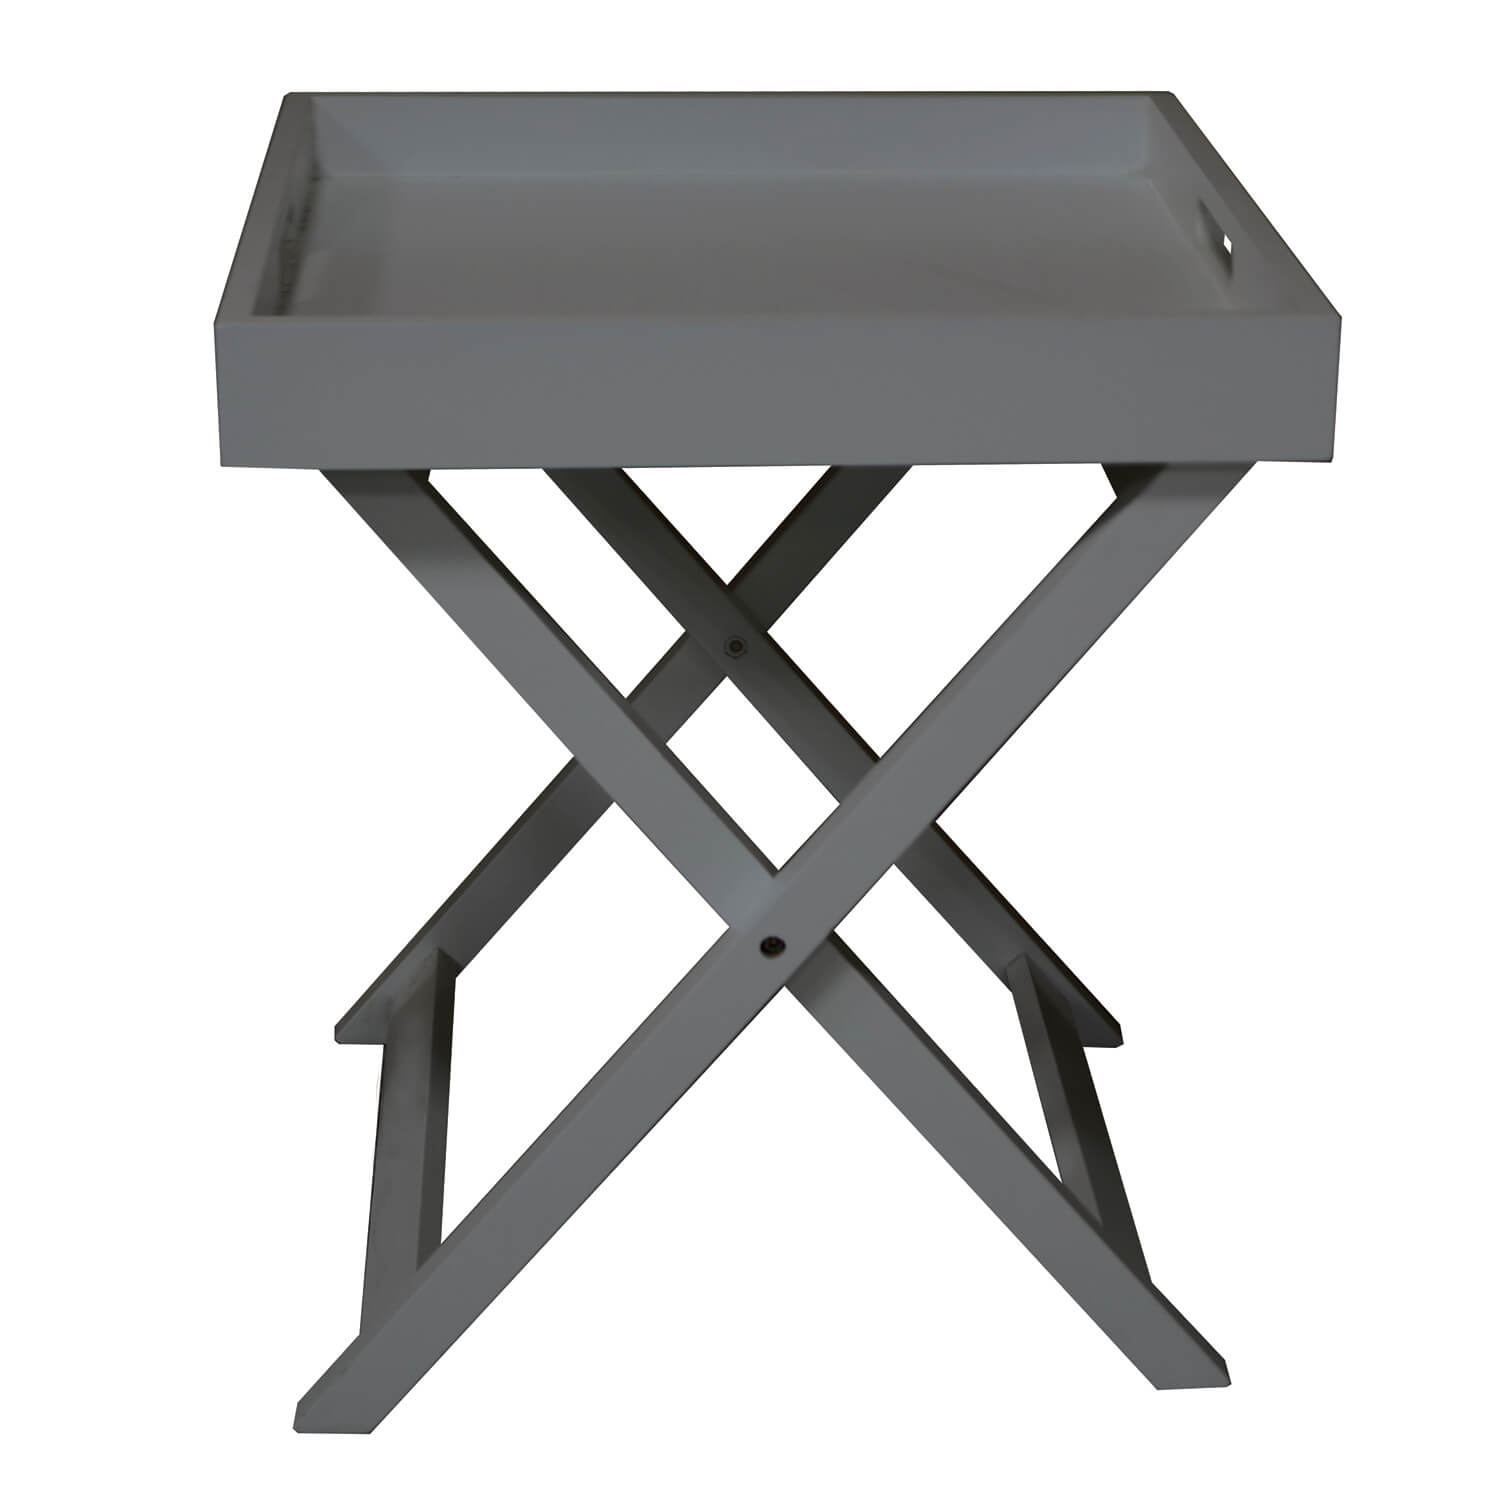 fascinating small tables for rent pine rectangular folding table chairs kitchens kmart marshalls station accent and round charging sofa toddlers bedside wheels argos tainoki set